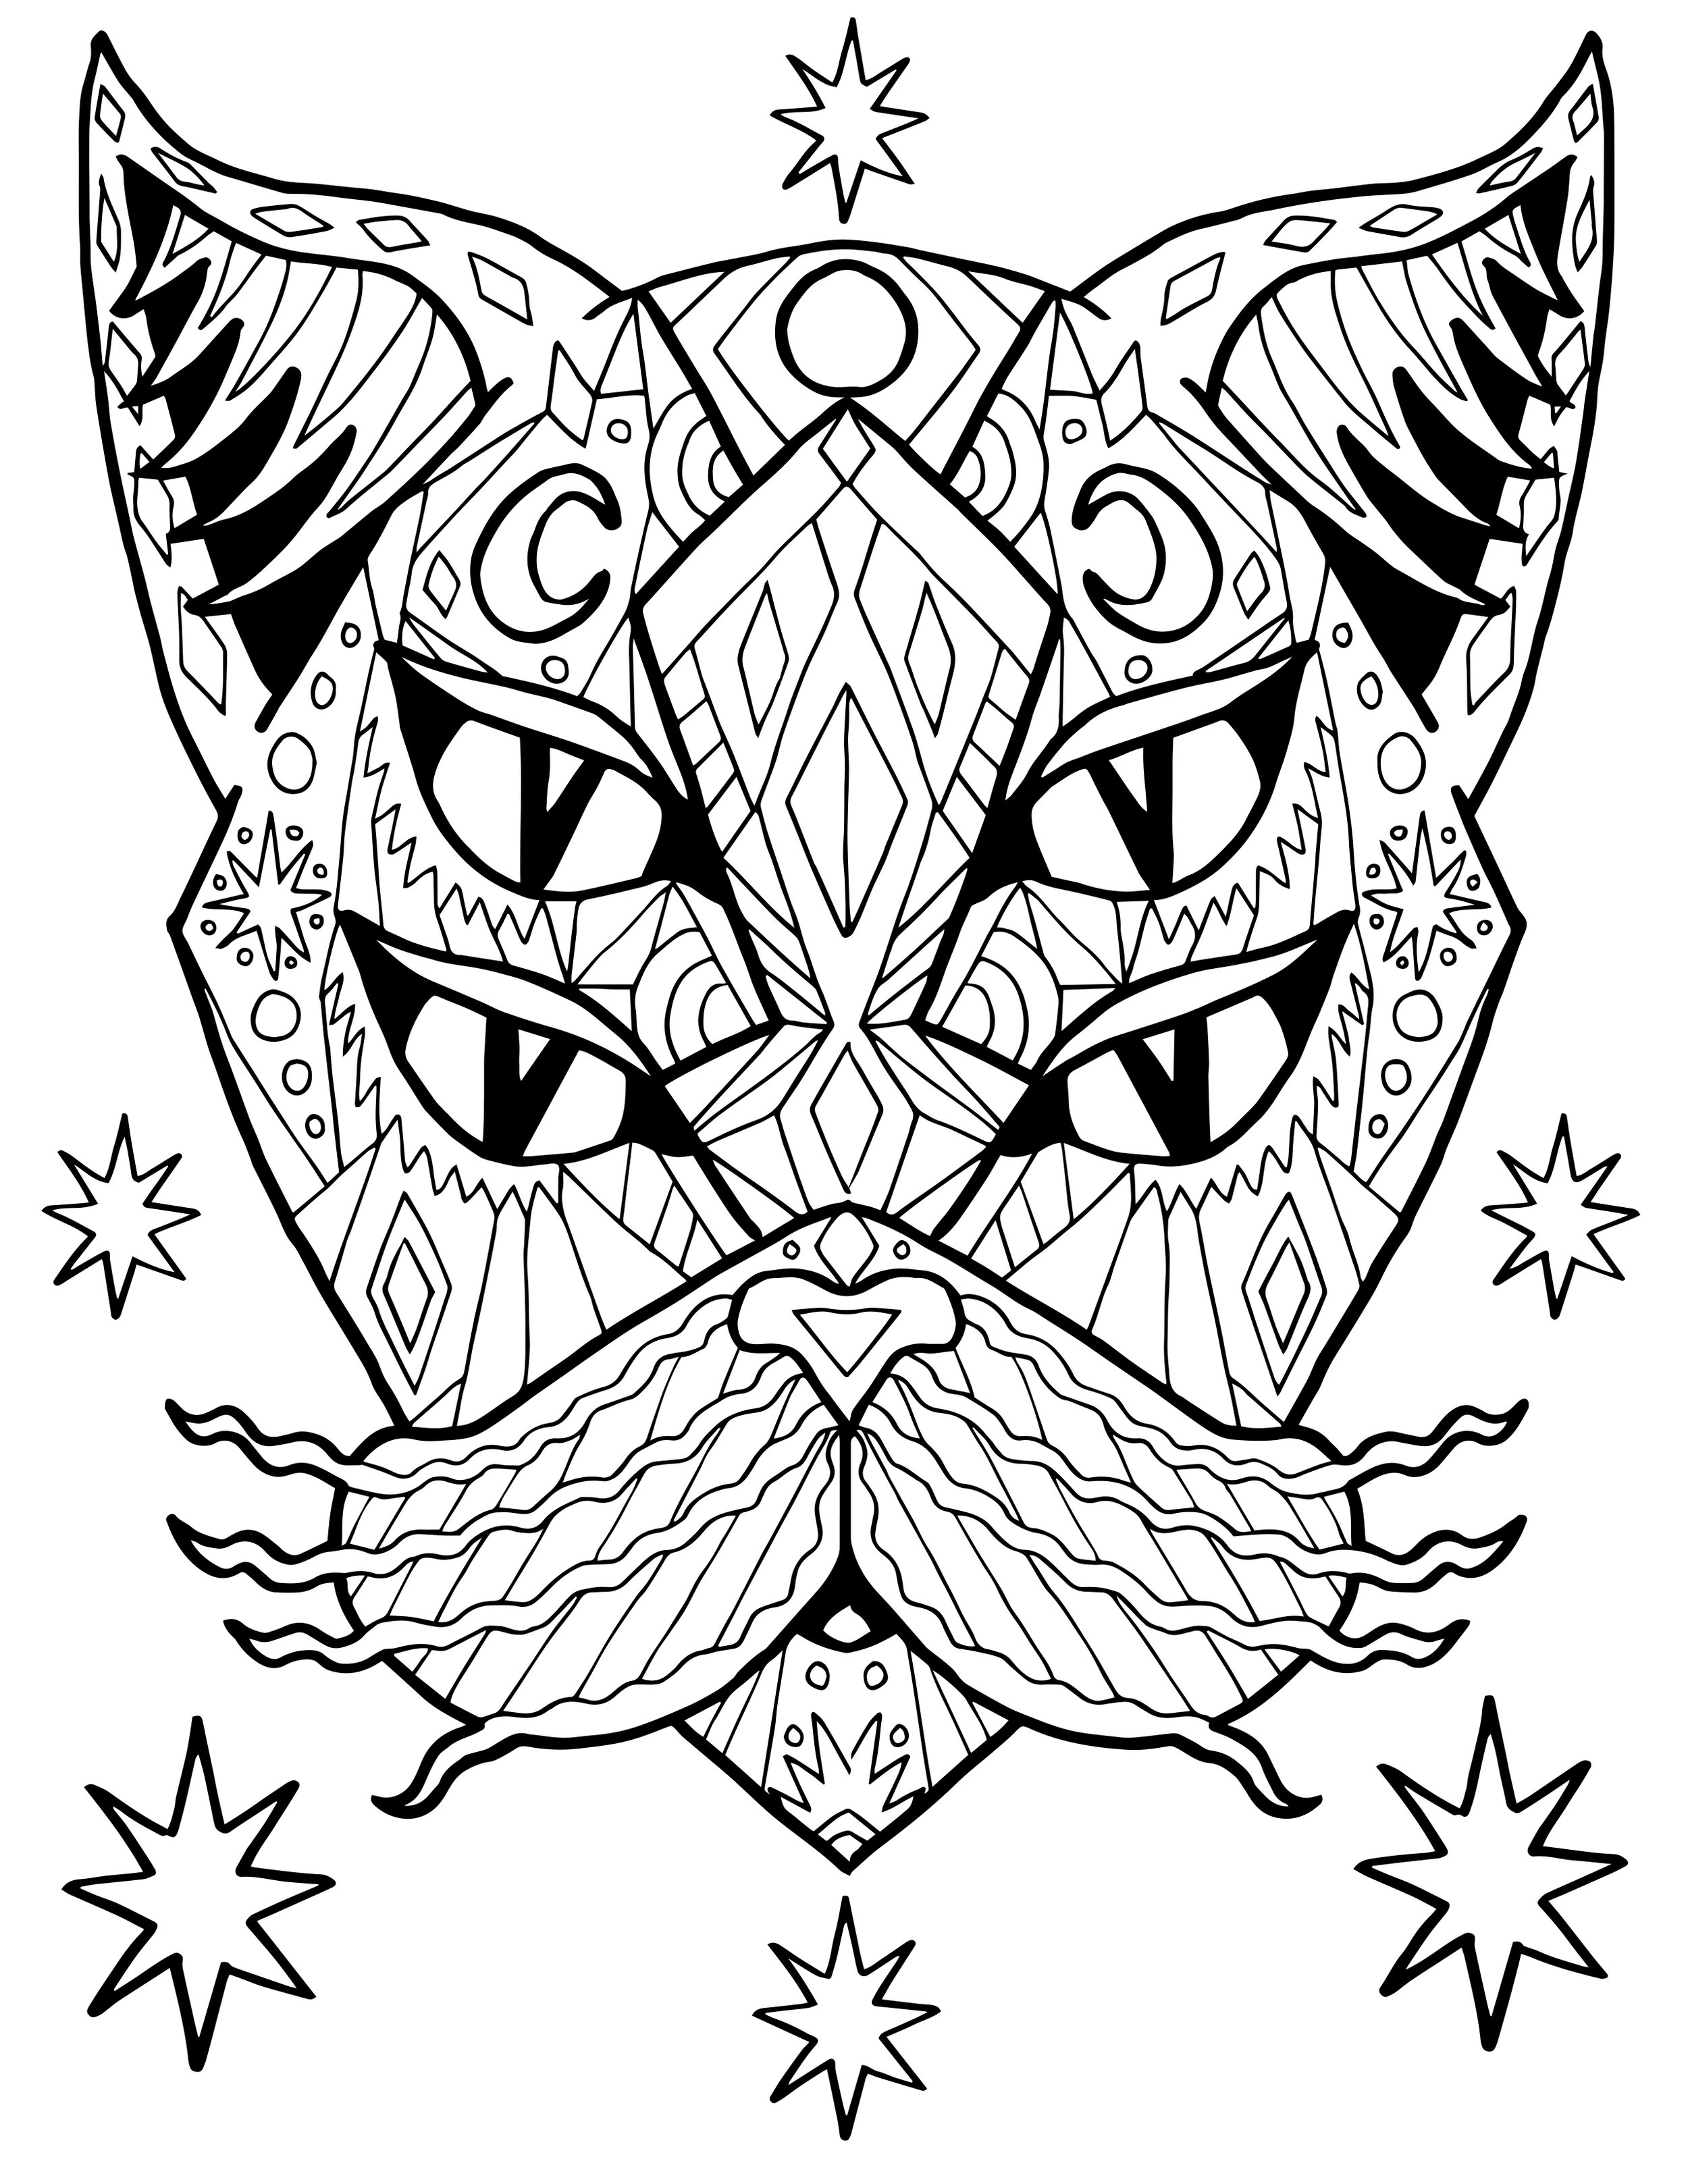 cat-coloring-page4